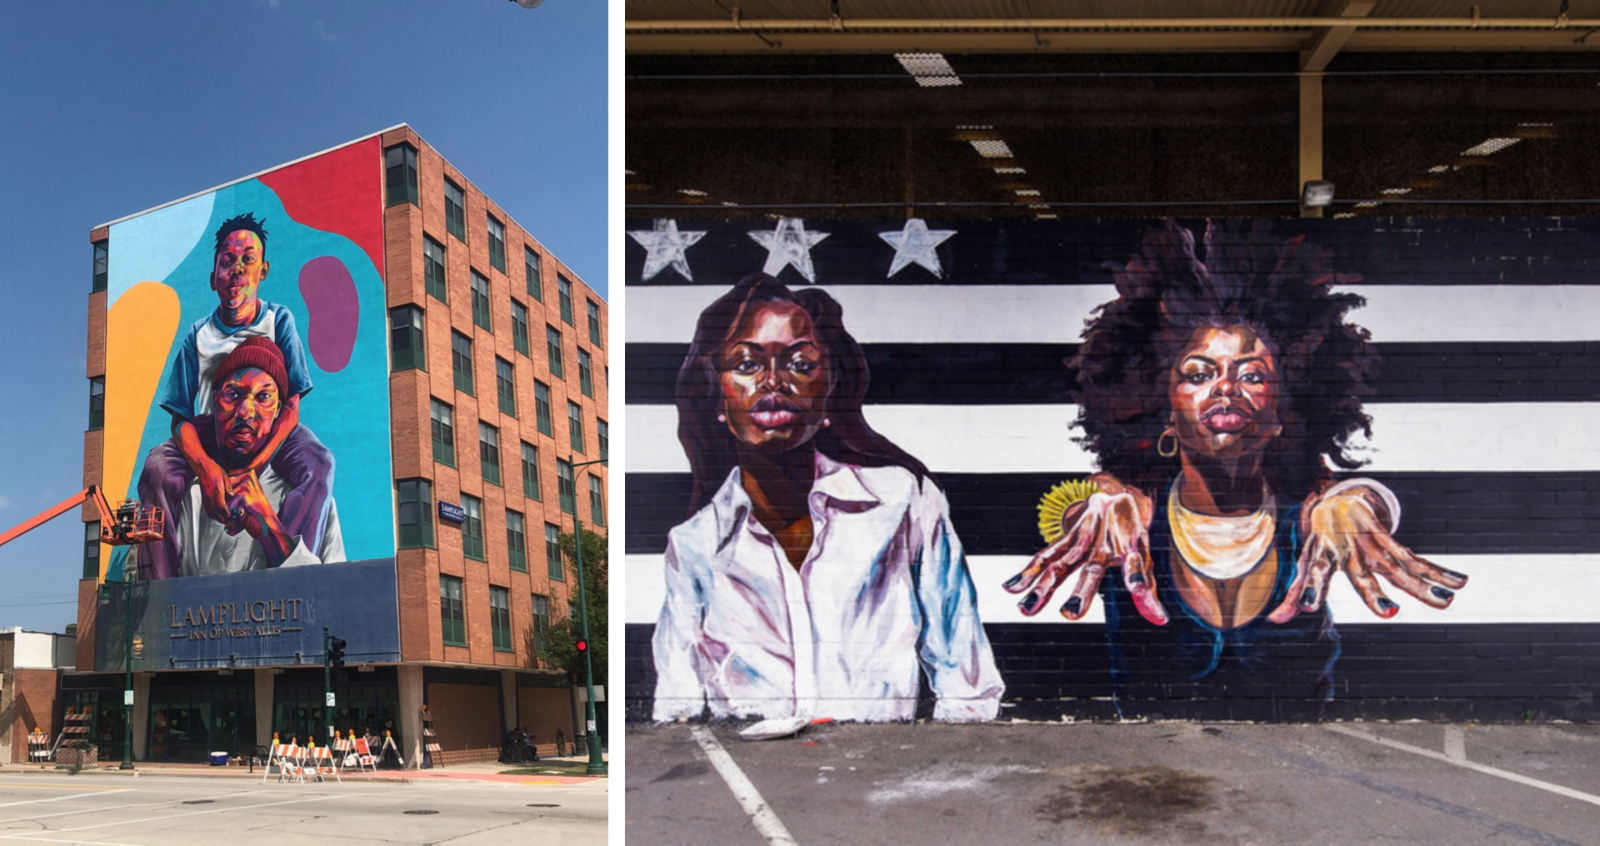 Image courtesy of BLKOUT Walls Mural Festival